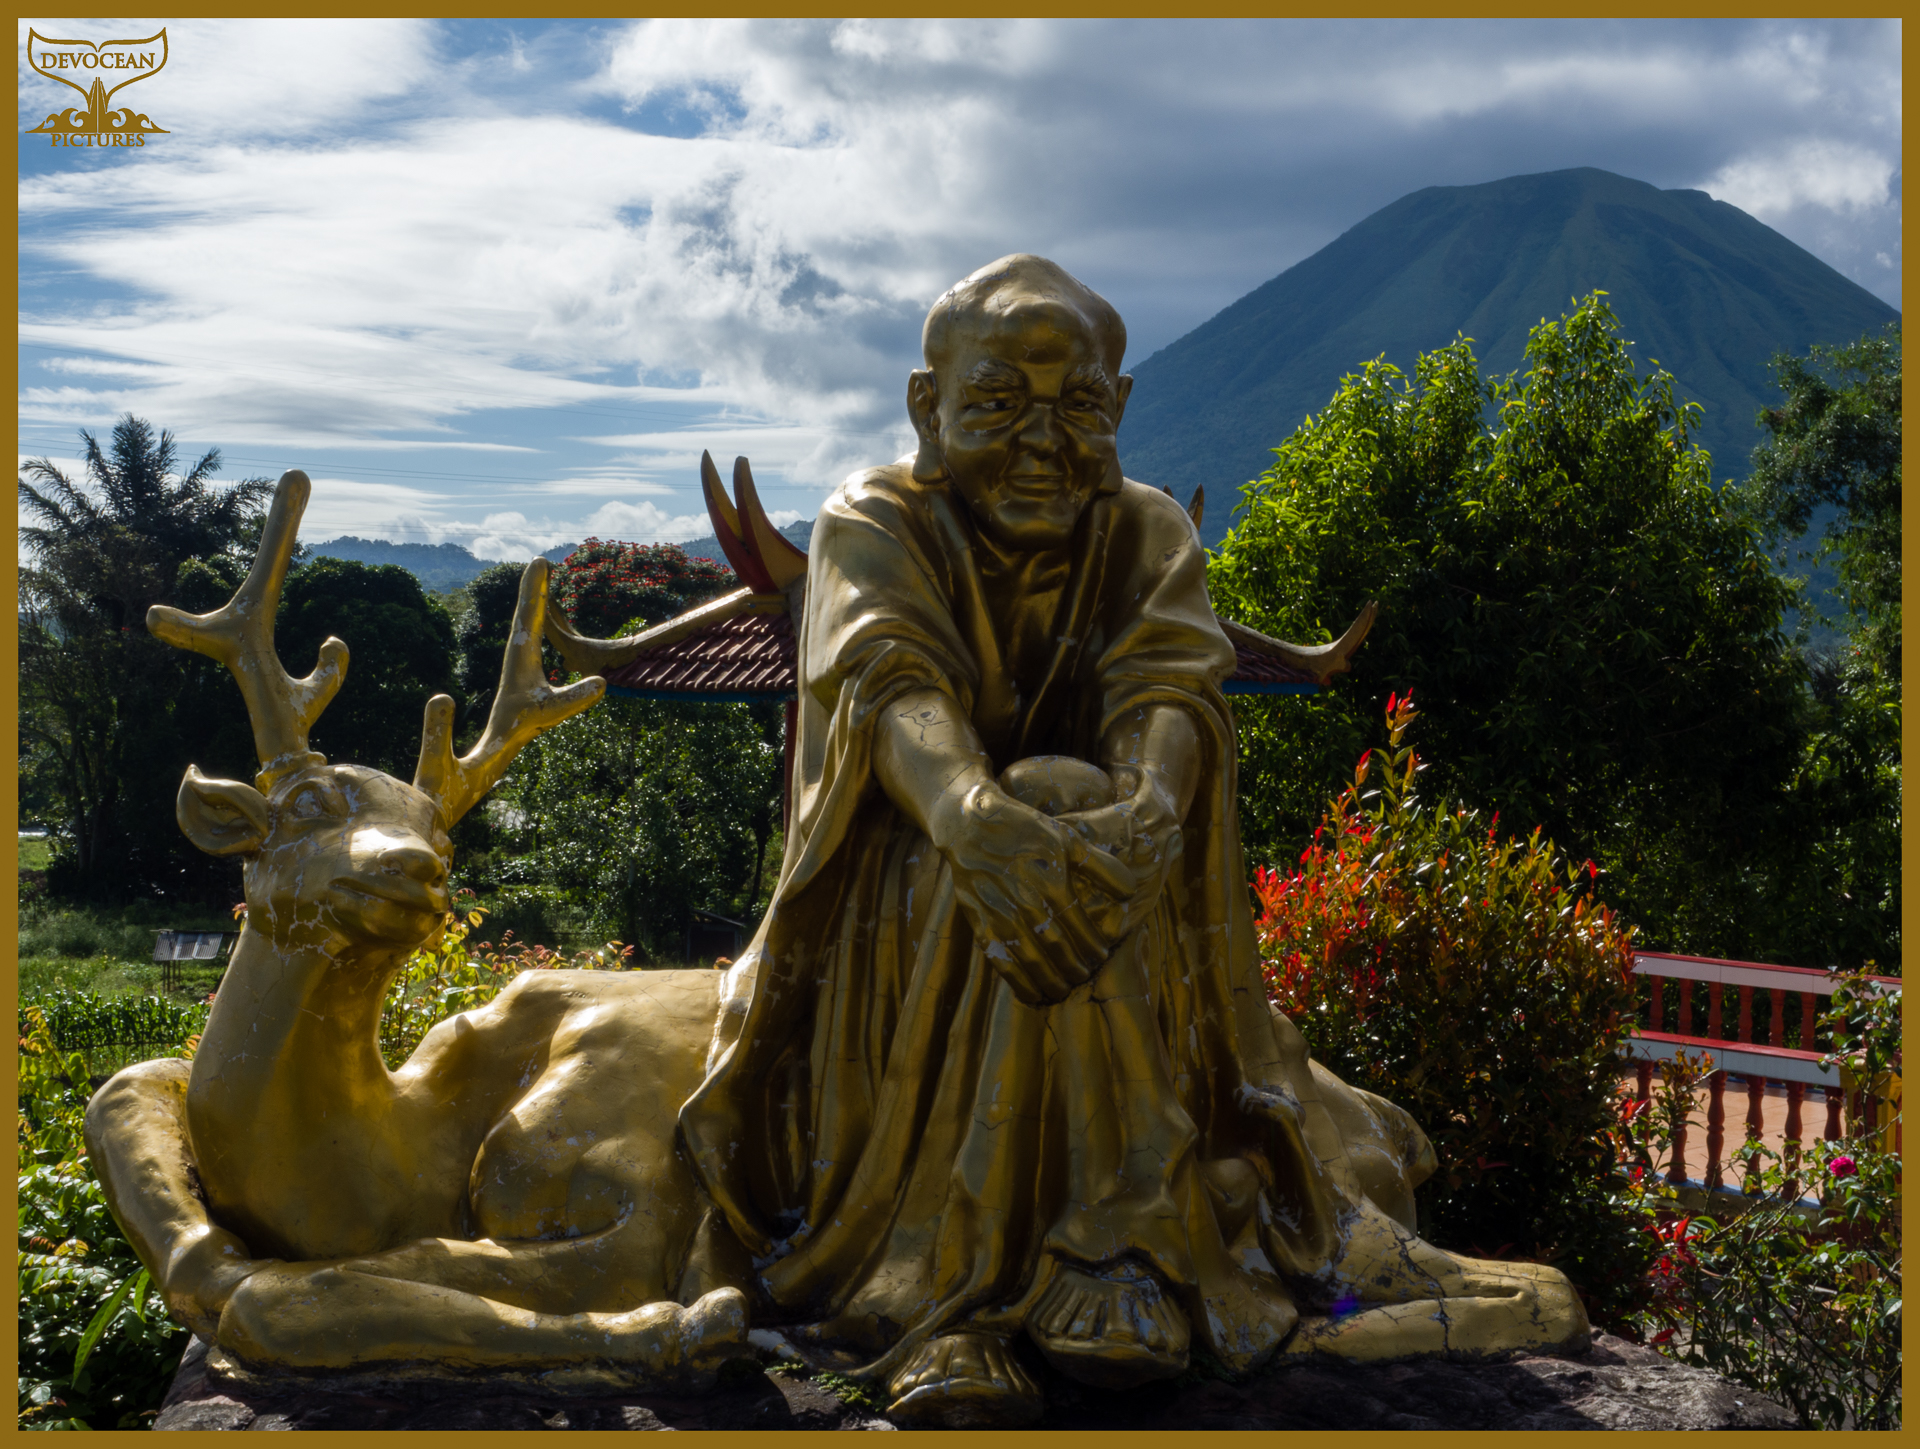 Statue in front of mount Lokon at Buddhist temple with pagoda and statue in Tomohon (Sulawesi, Indonesia). Postcard with warm regards from Devocean Pictures